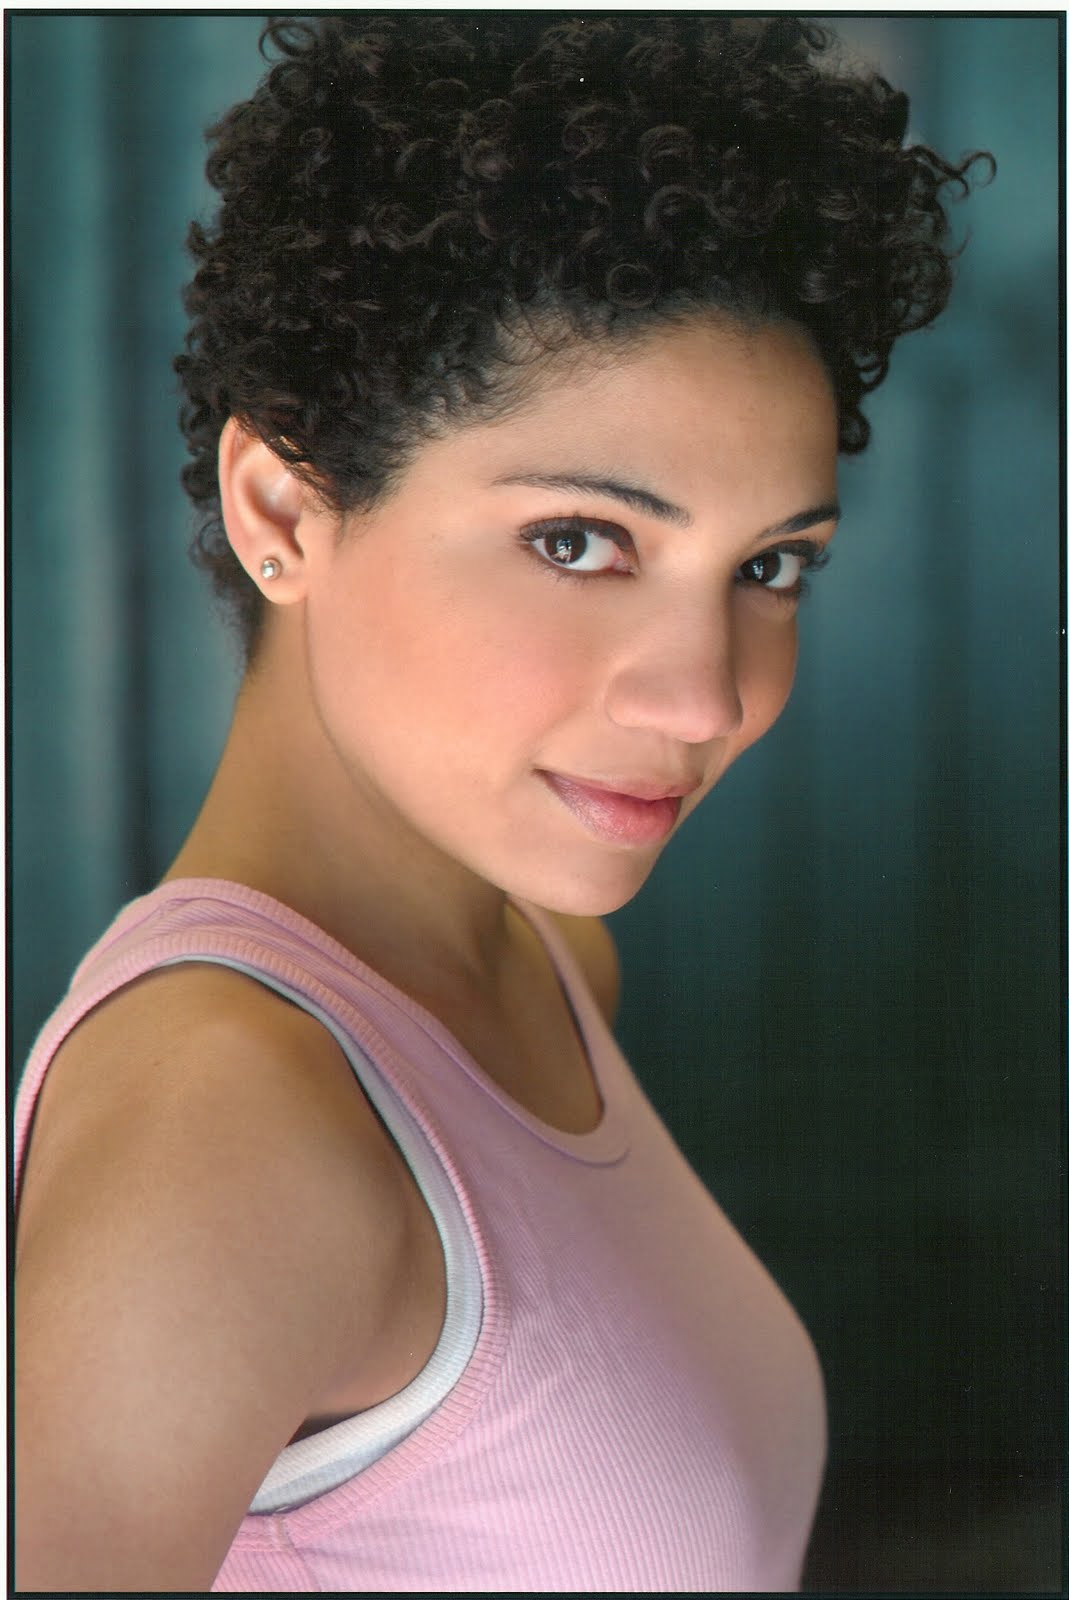 CurlyNikki Interviews Jasika Nicole About Her Curly Hair!